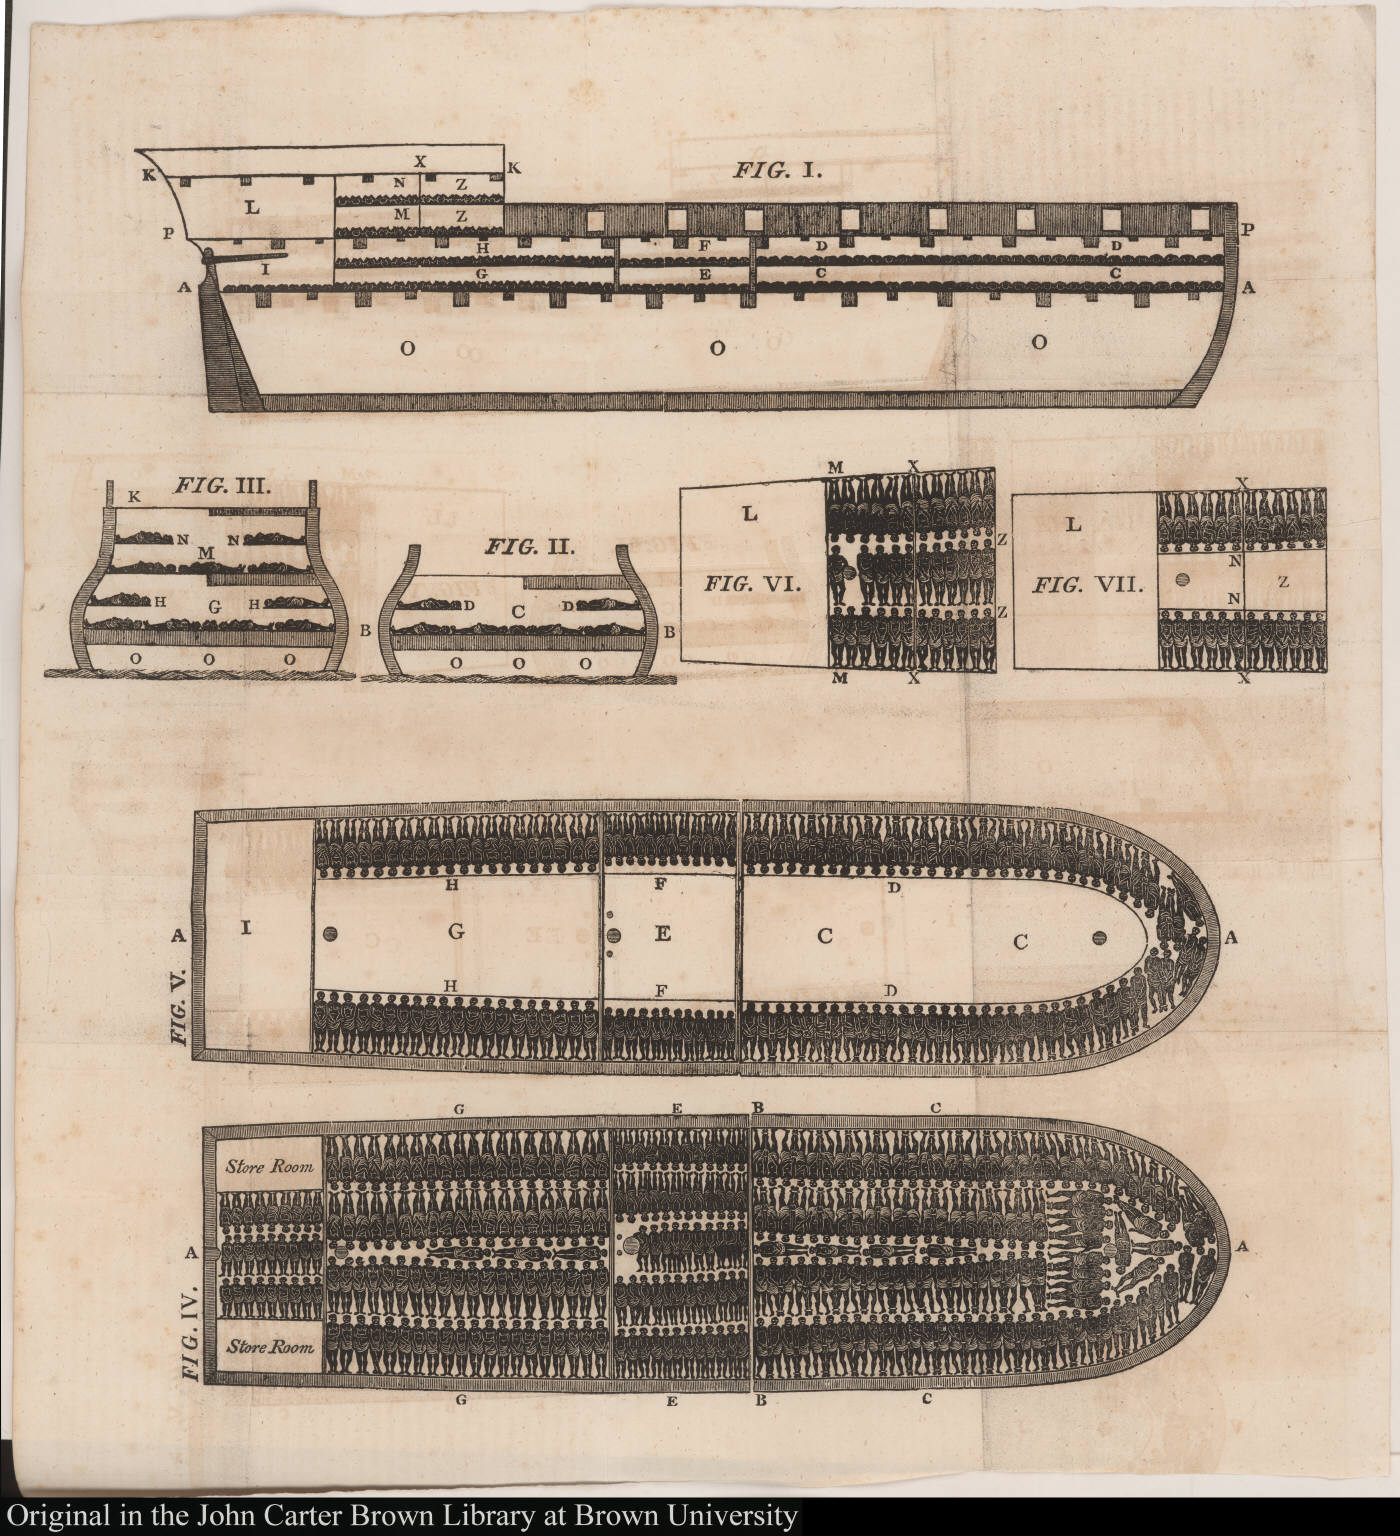 Diagram of a slave ship] - JCB Archive of Early American Images